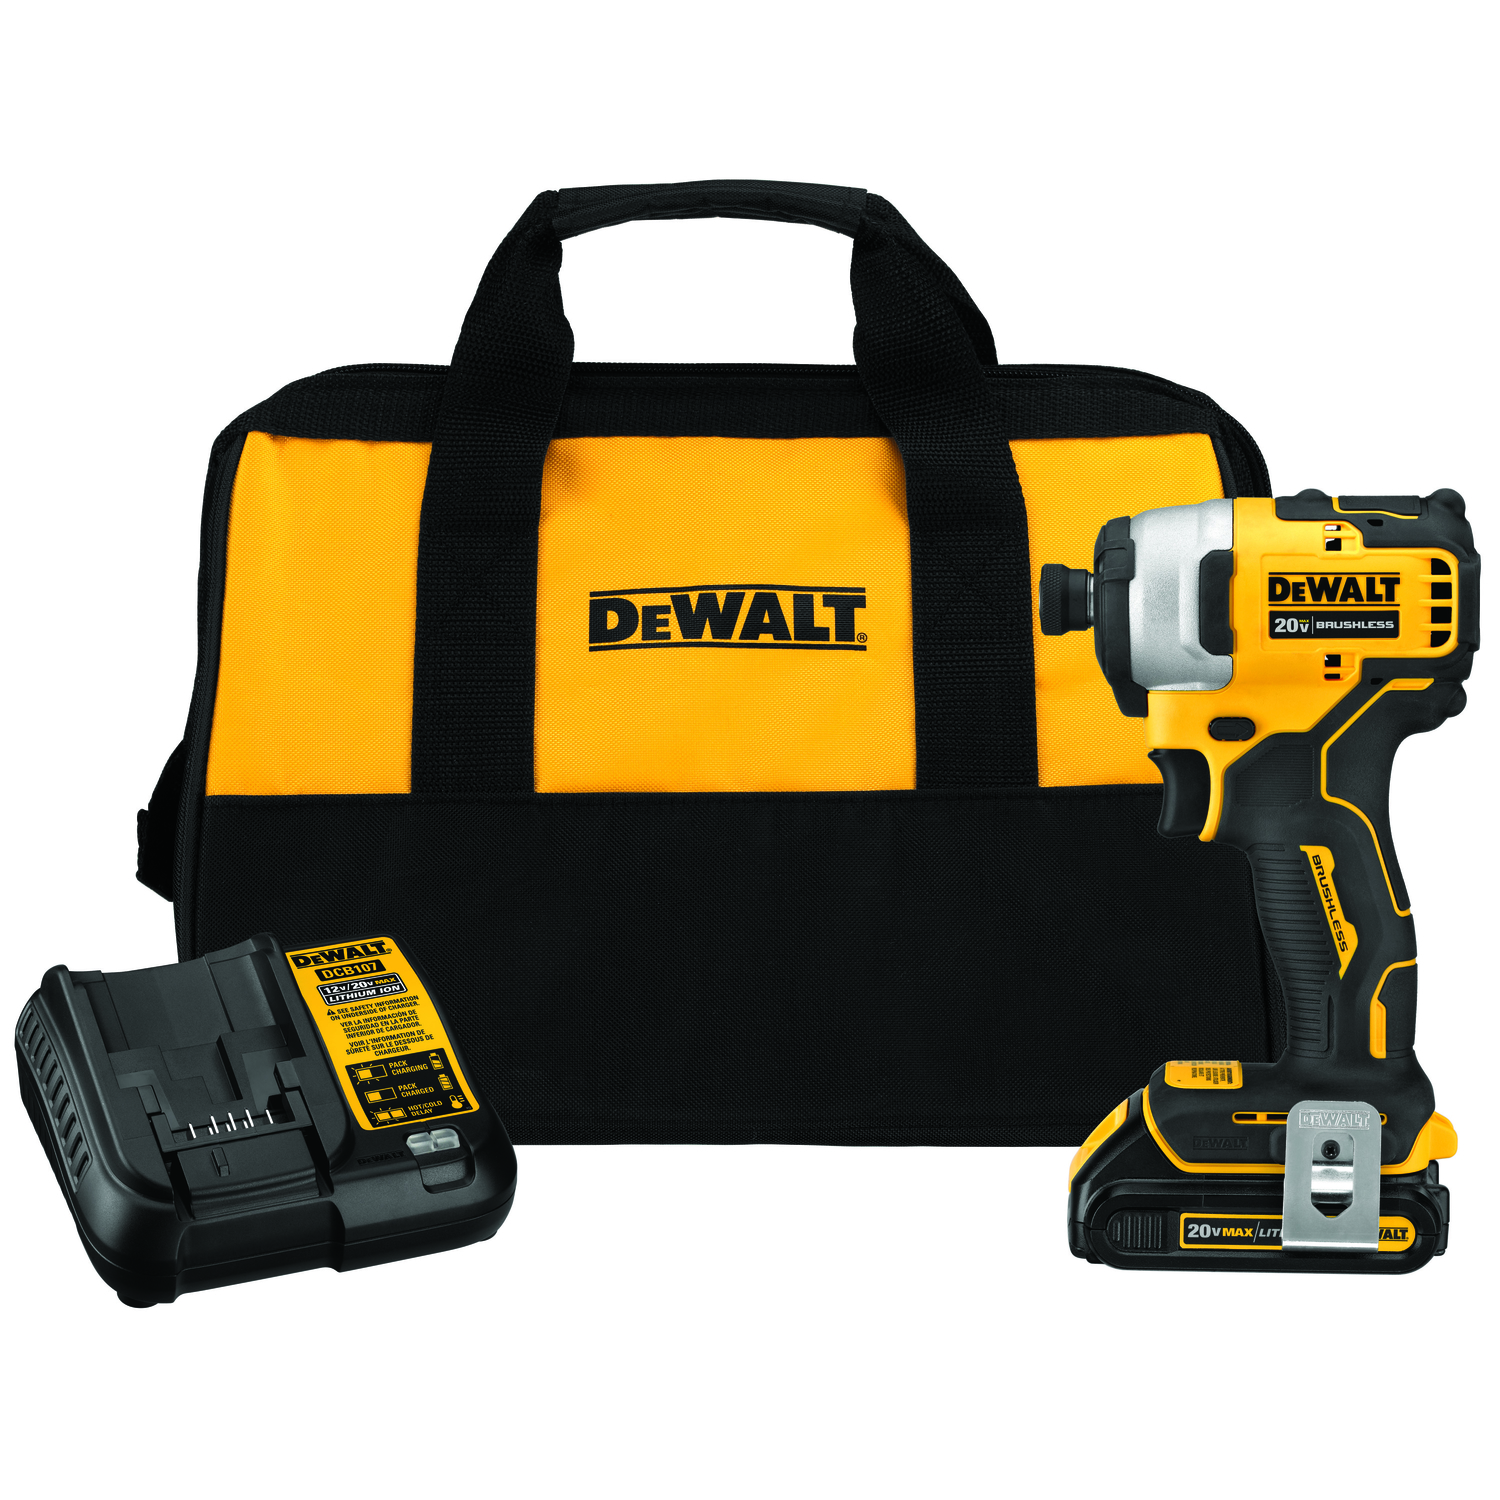 DeWalt 20V Max 20 volts 1/4 in. Hex Cordless Brushless Impact Driver ...